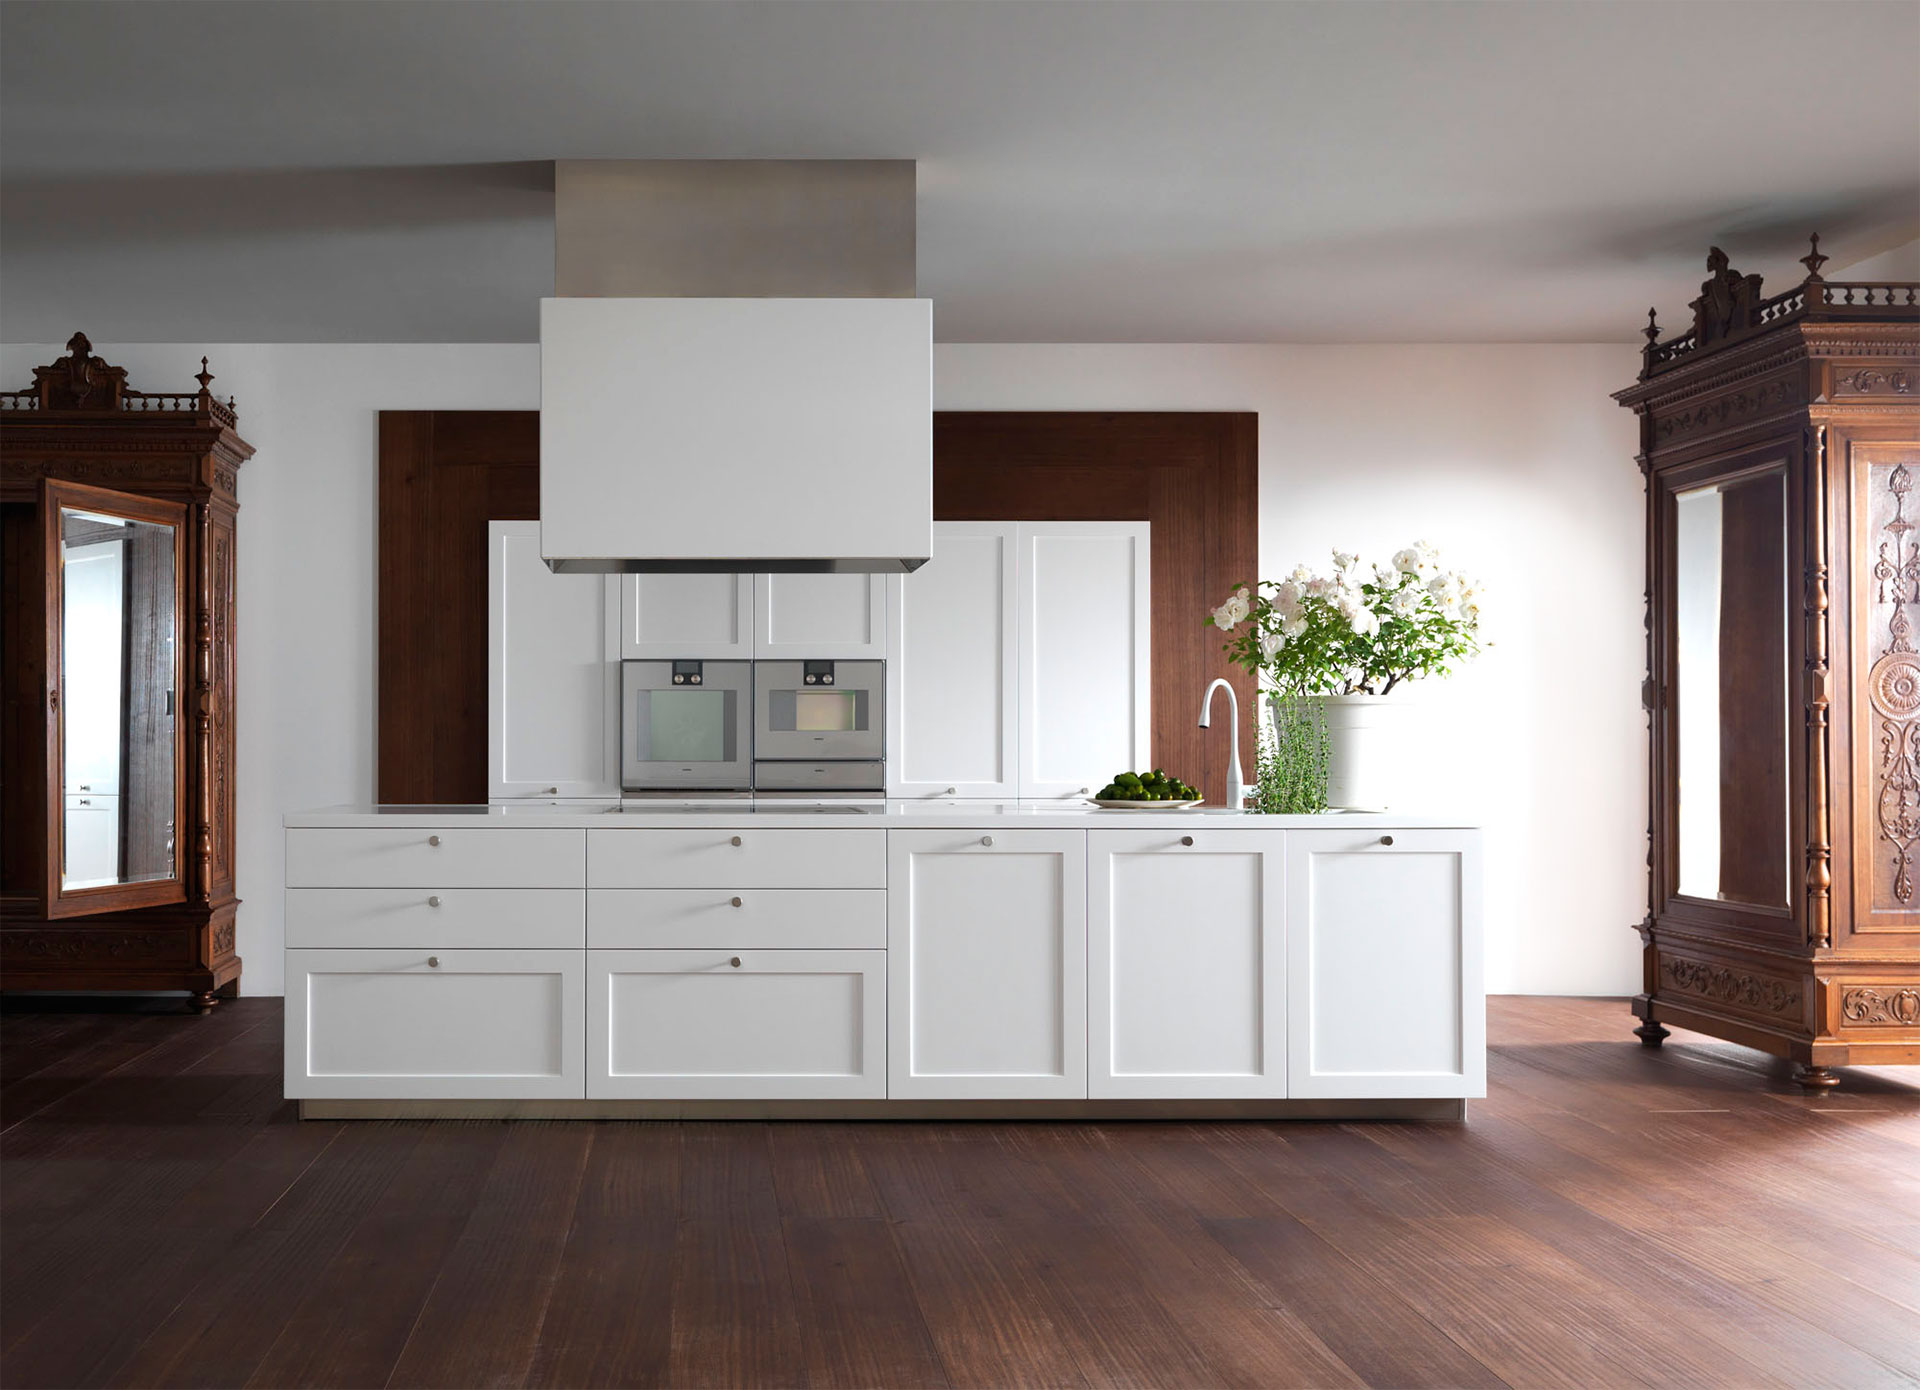 Effeti cucine design kitchens made in italy for Cucine di design